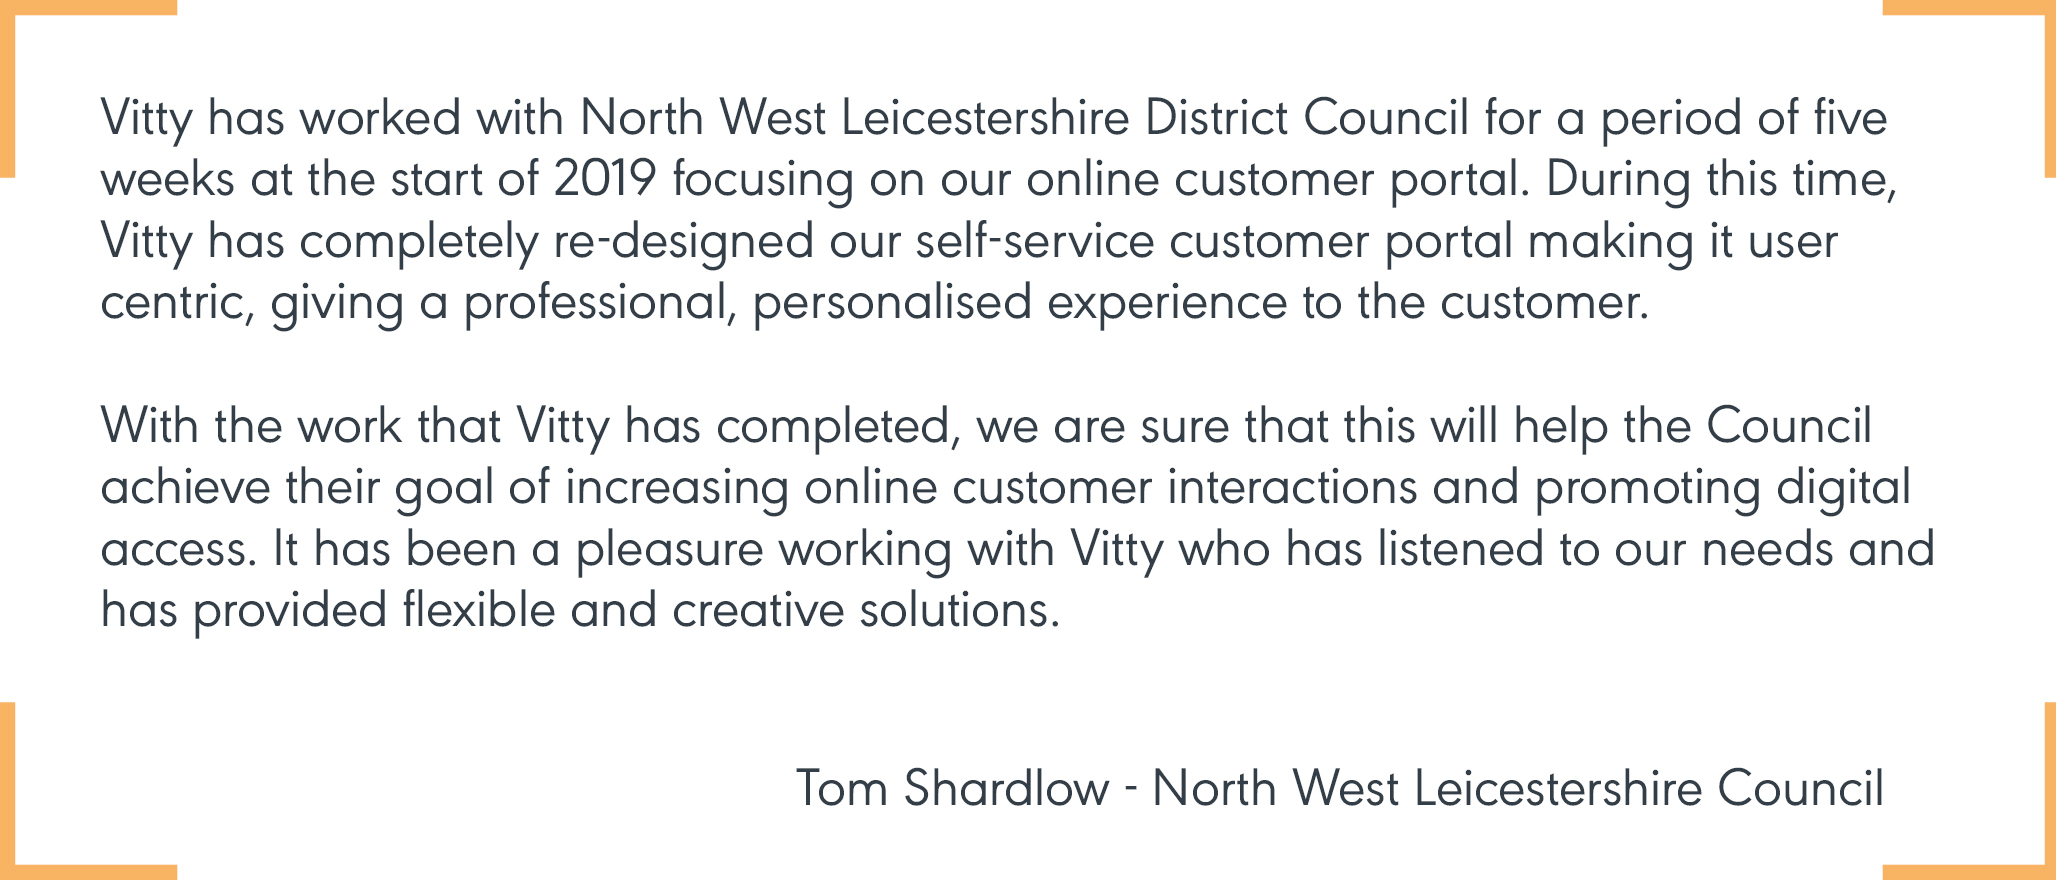 Tom from North West Leicestershire Council